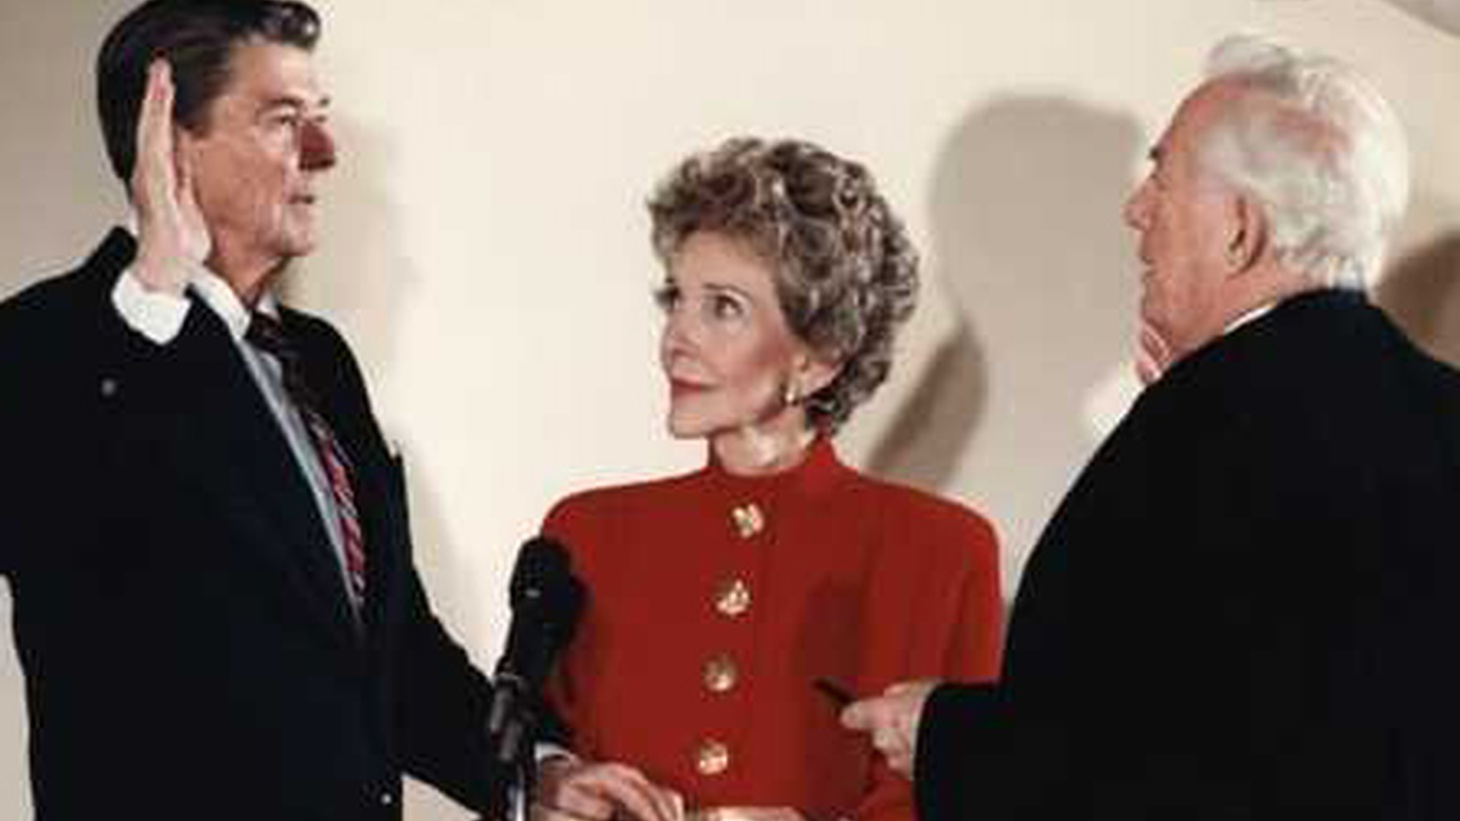 Nancy Reagan — the First Lady at the height of the feminist movement --  died yesterday  at the age of 94. She was famous for her adoring stare at the Hollywood actor who became Governor of California and then President of the United States.